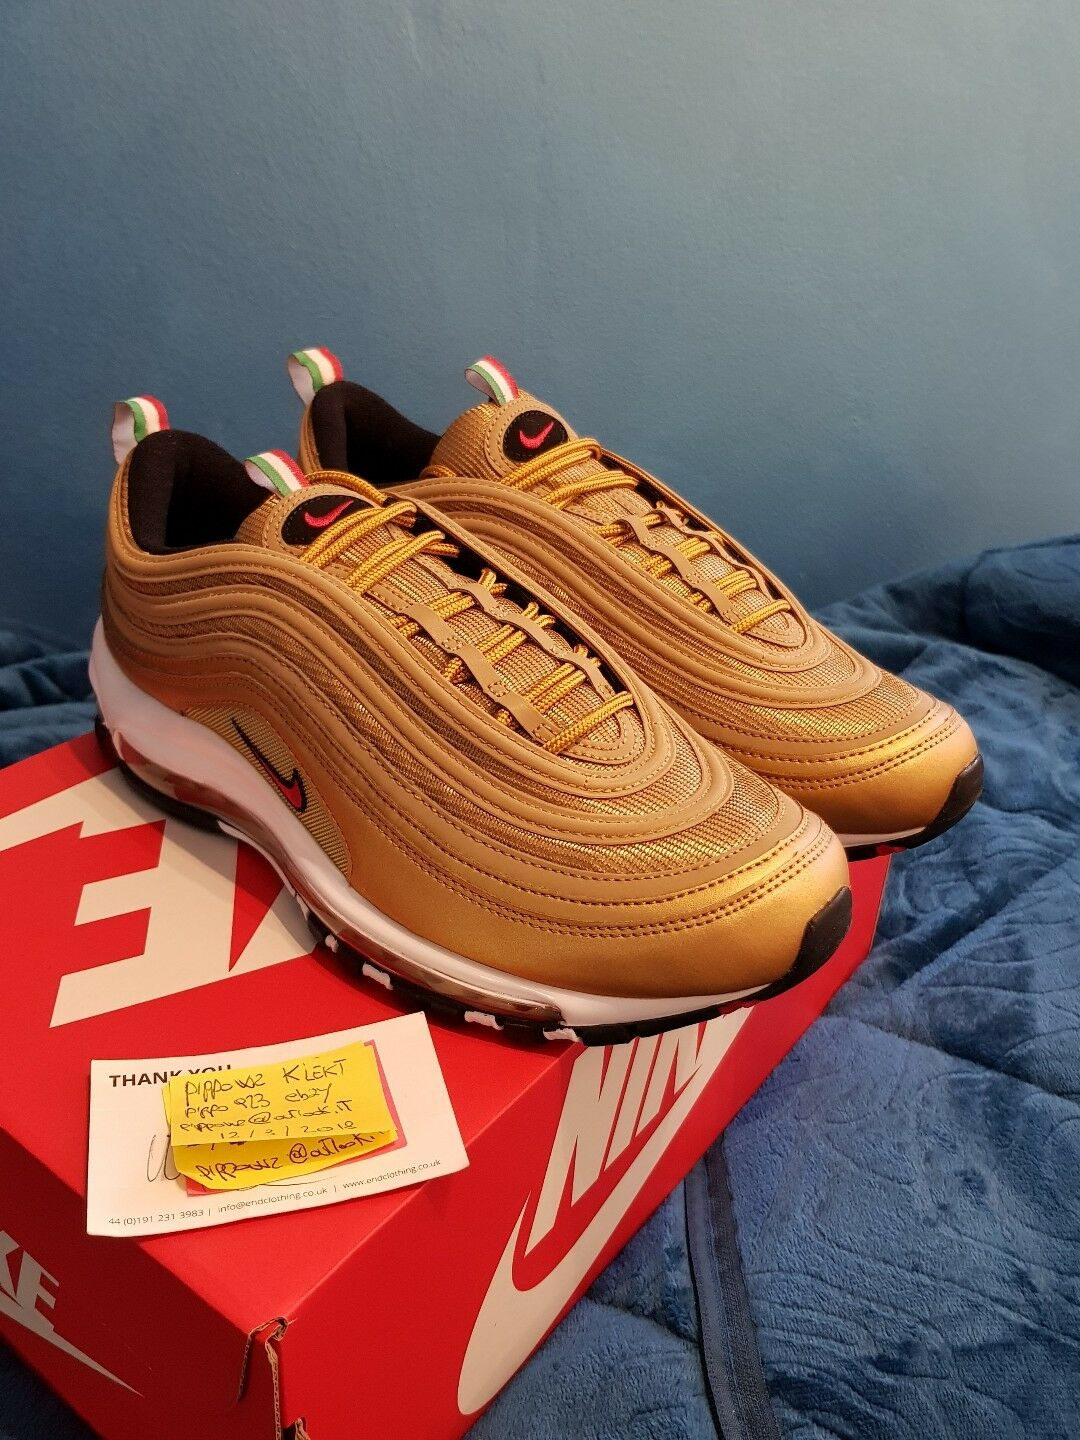 on sale d01aa 3c914 Nike IT Air max 97 IT Nike Oro Italy 2018 Sold Out!!! c67967 ...